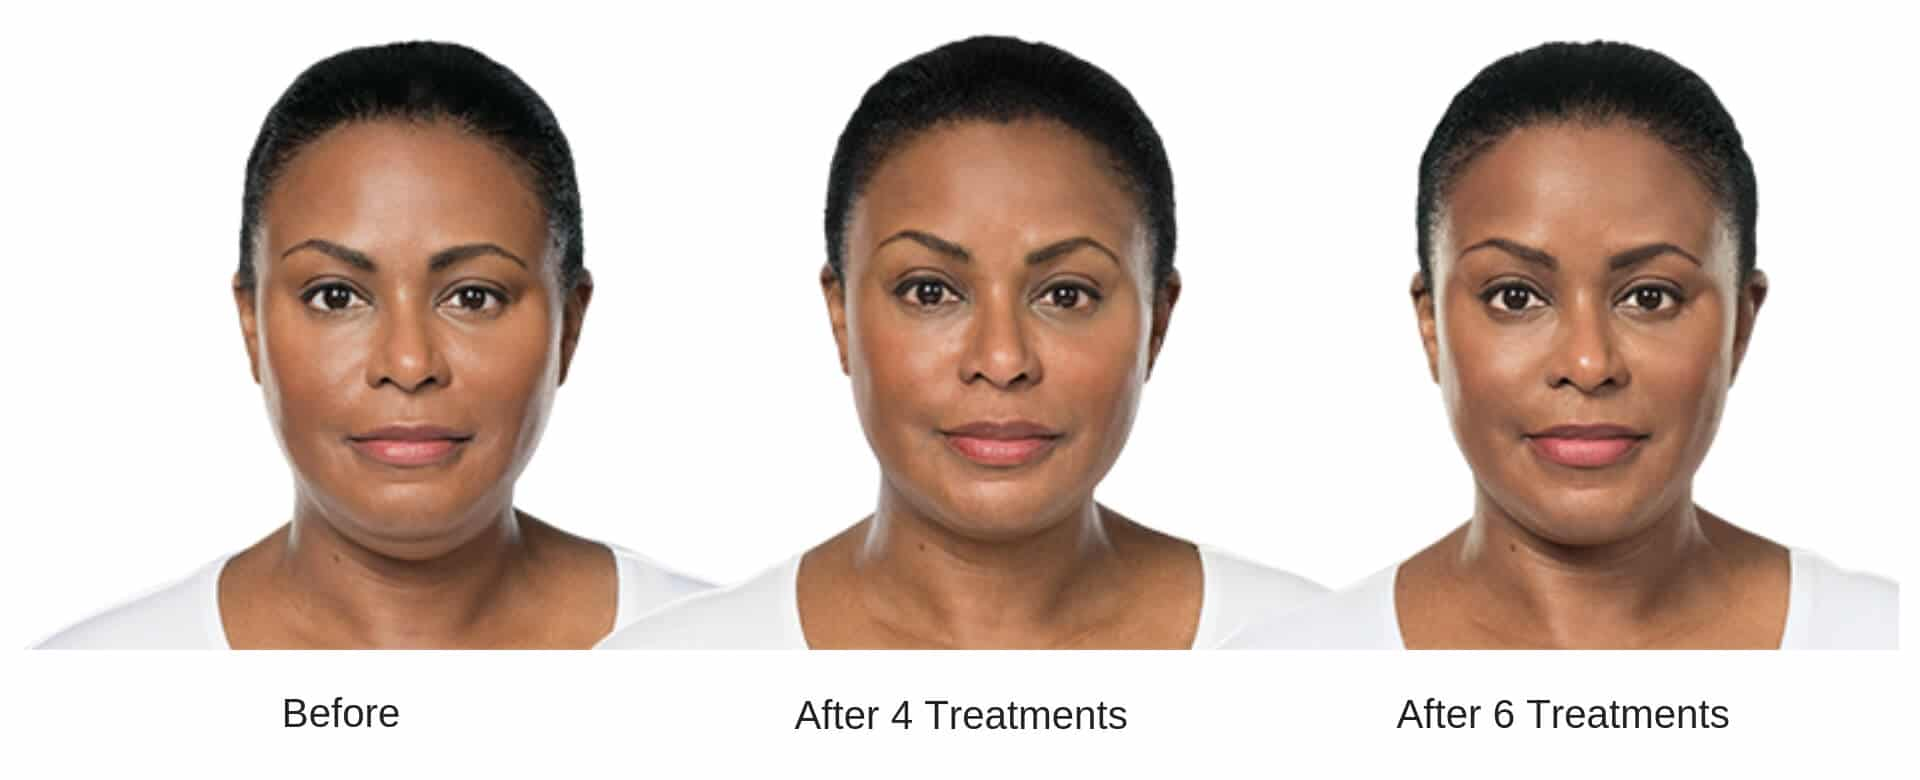 Womans before and after 6 treatment results from Kybella.